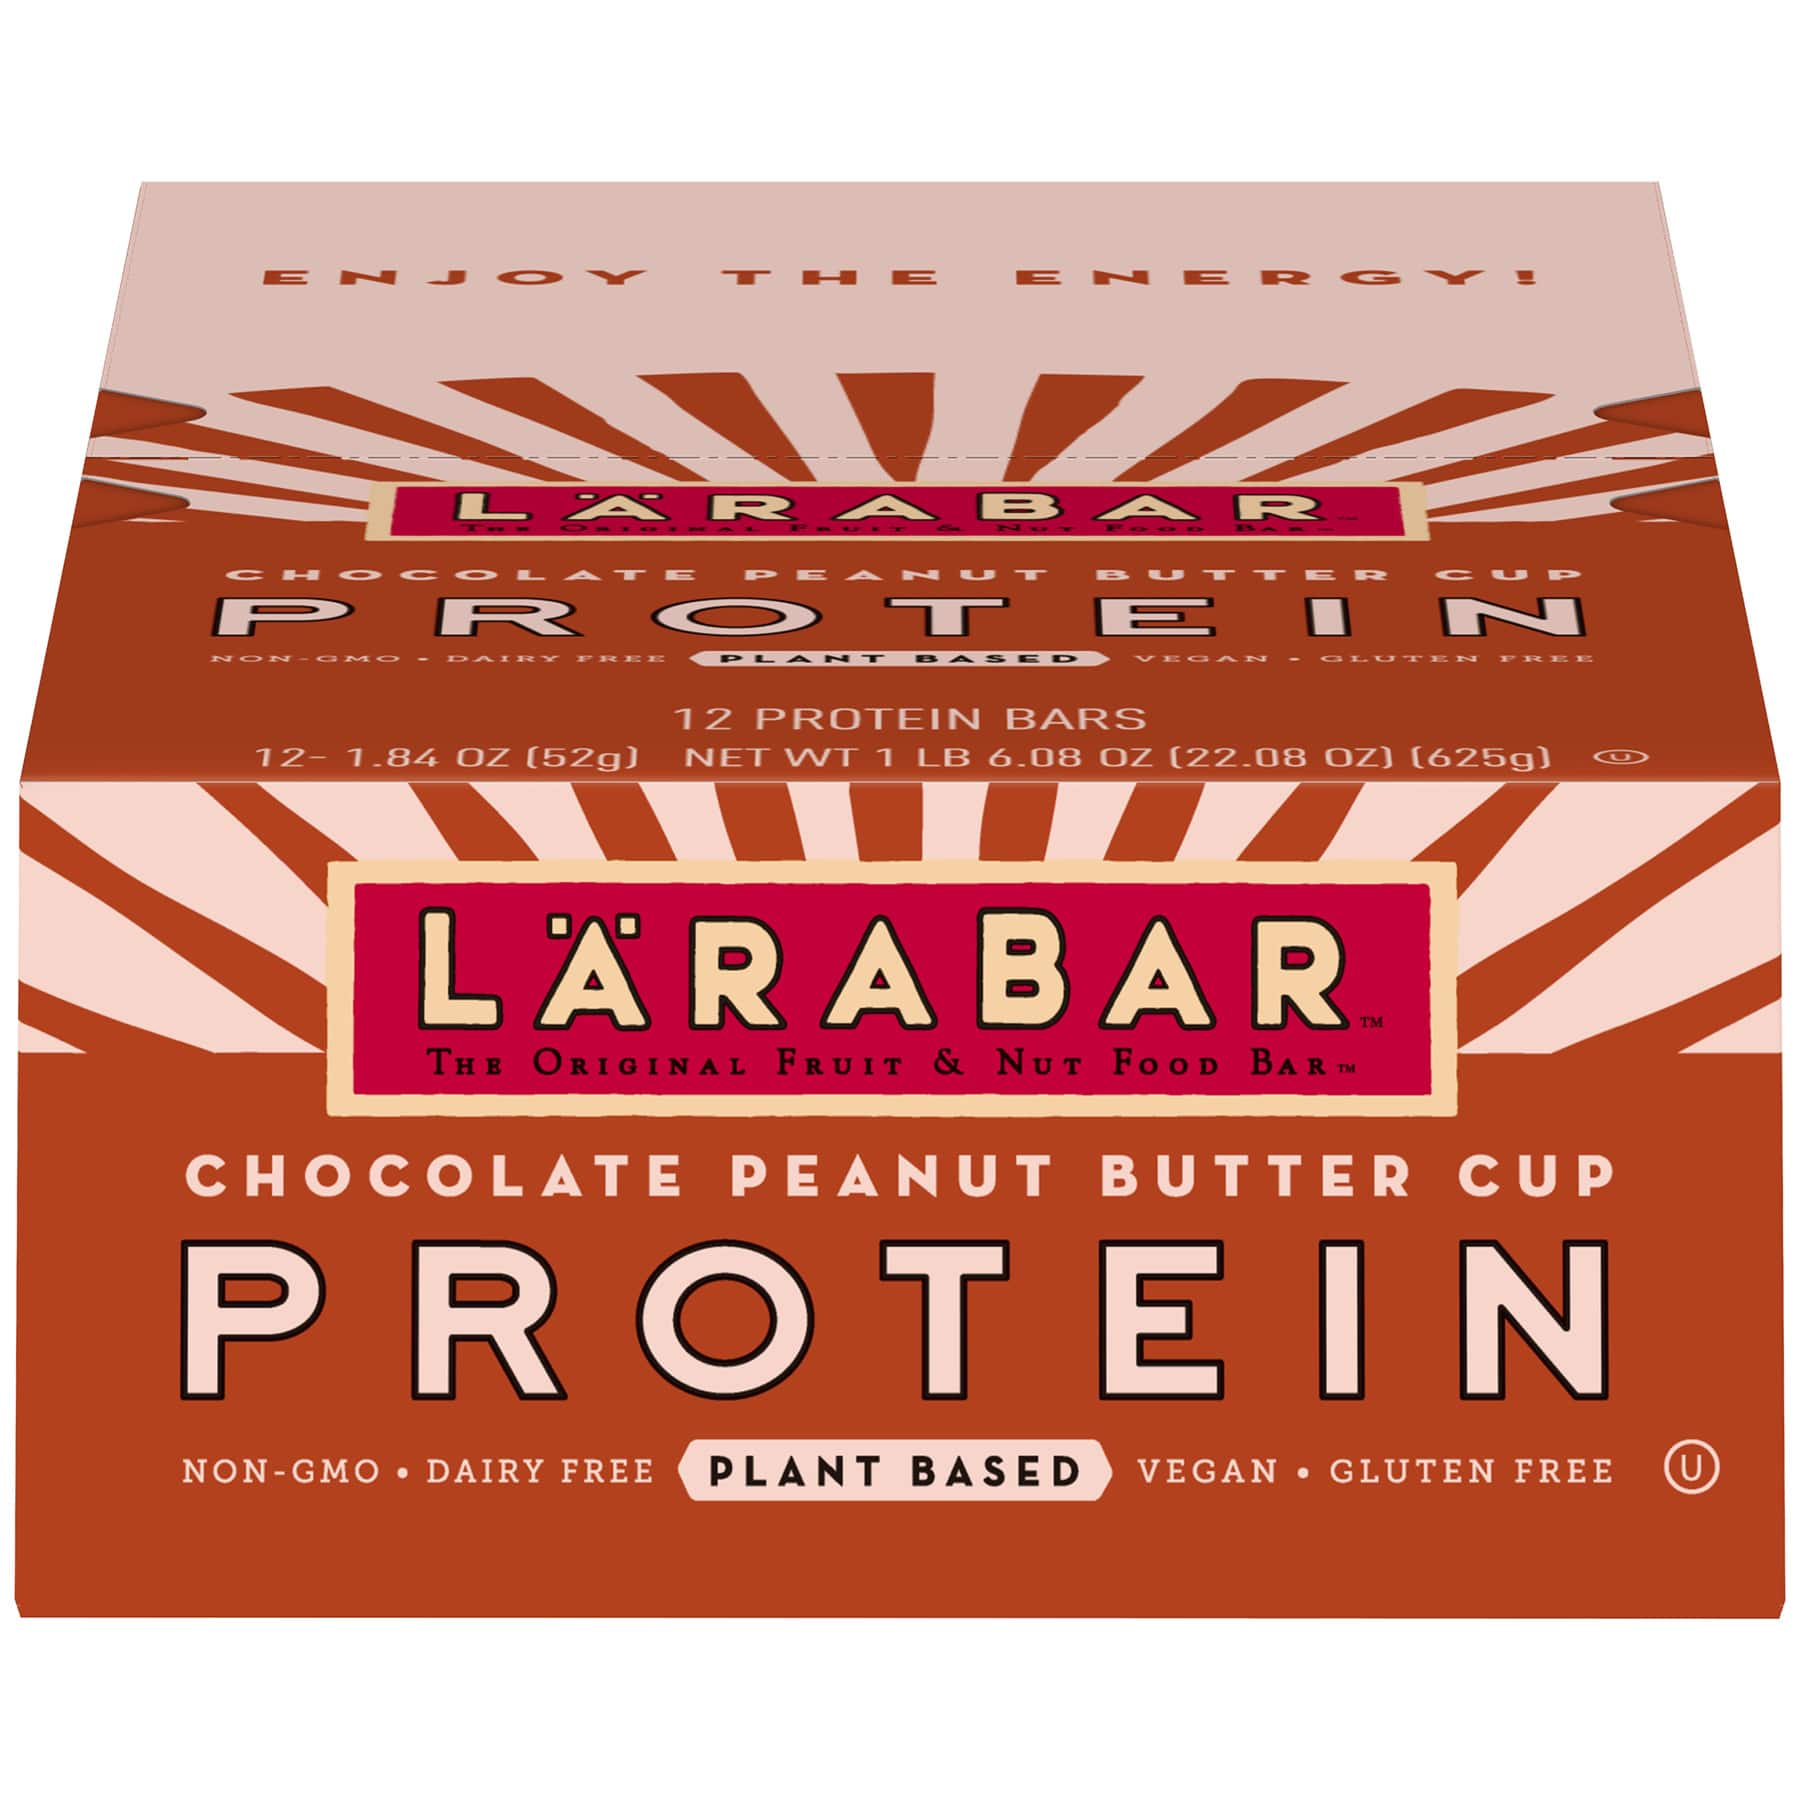 12 ct. Larabar Protein Bar, Chocolate Peanut Butter Cup (Add on item) $5.25